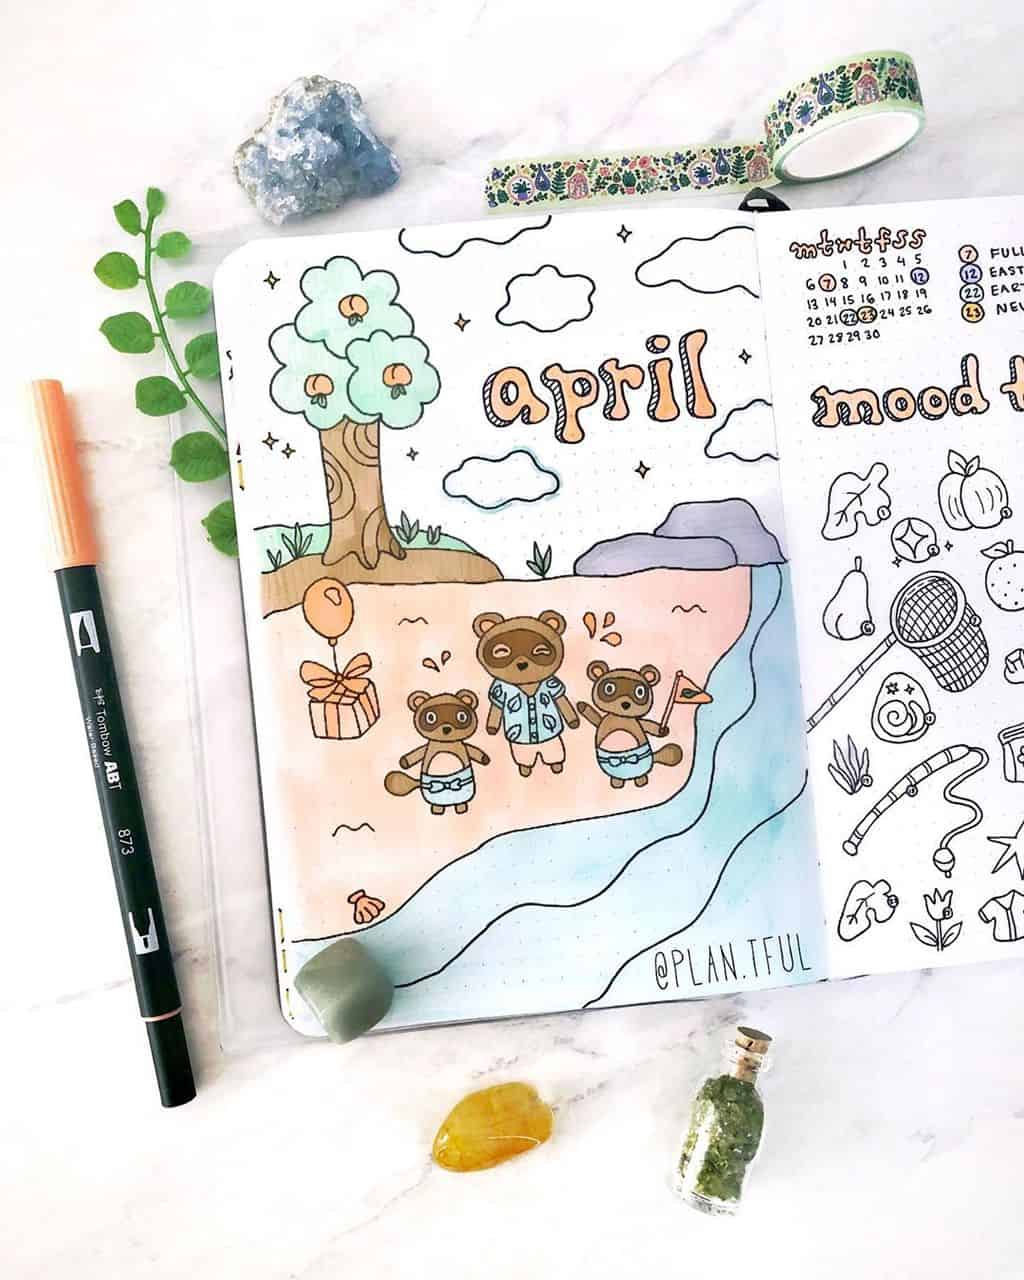 Animal Crossing Bullet Journal Inspirations - cover page by @plan.tful | Masha Plans